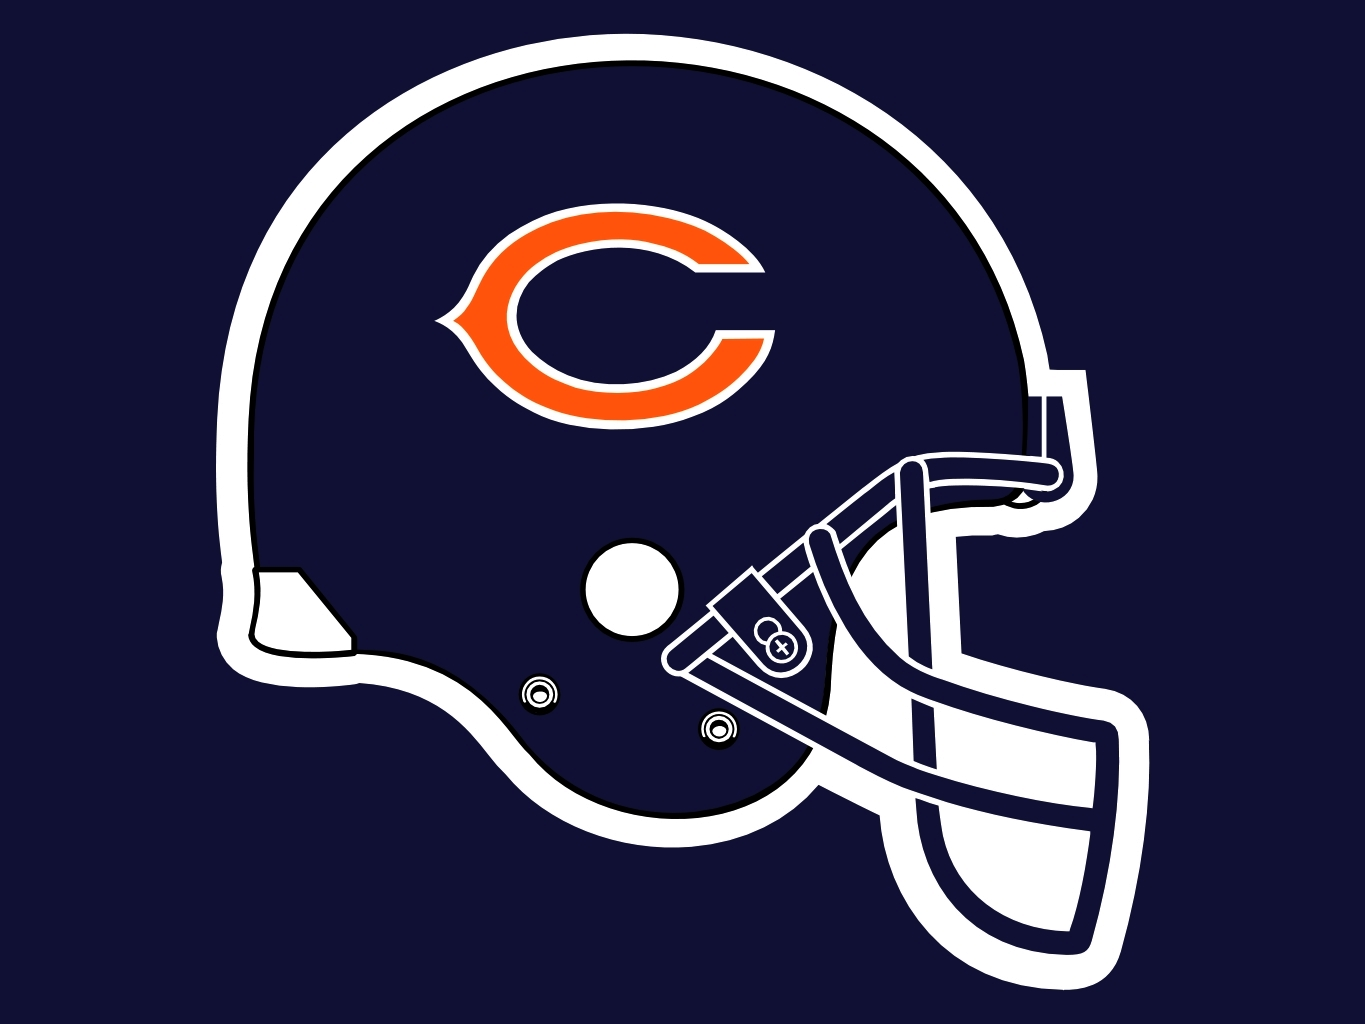 Free Chicago Bears Helmet Png, Download Free Clip Art, Free.